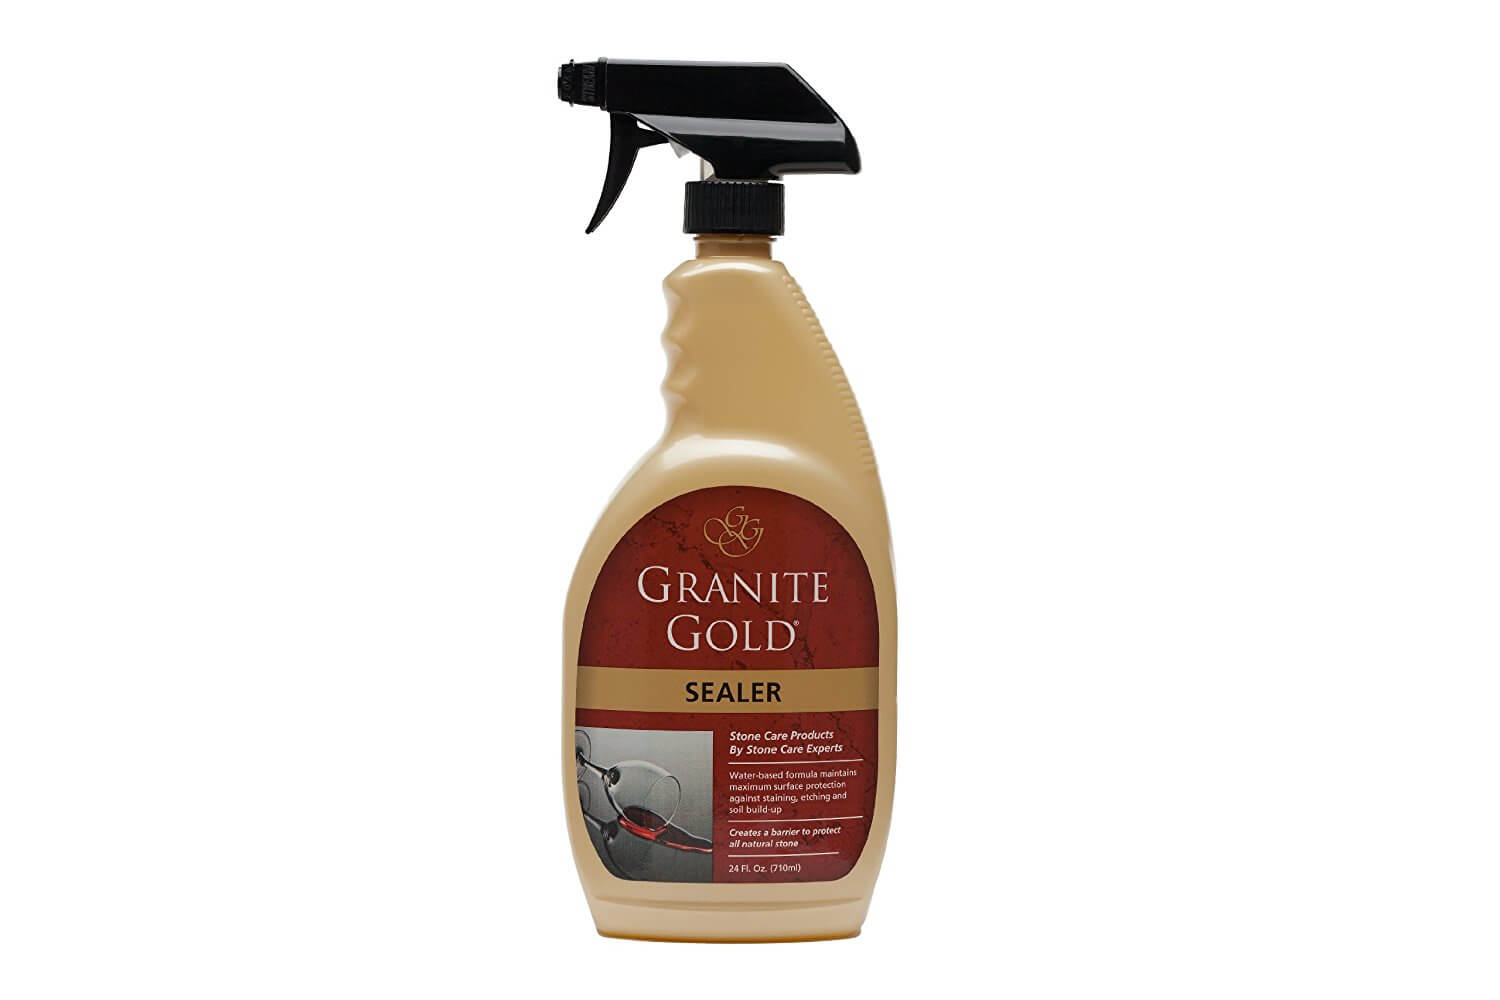 Granite Gold Sealer Preserver & Protectant